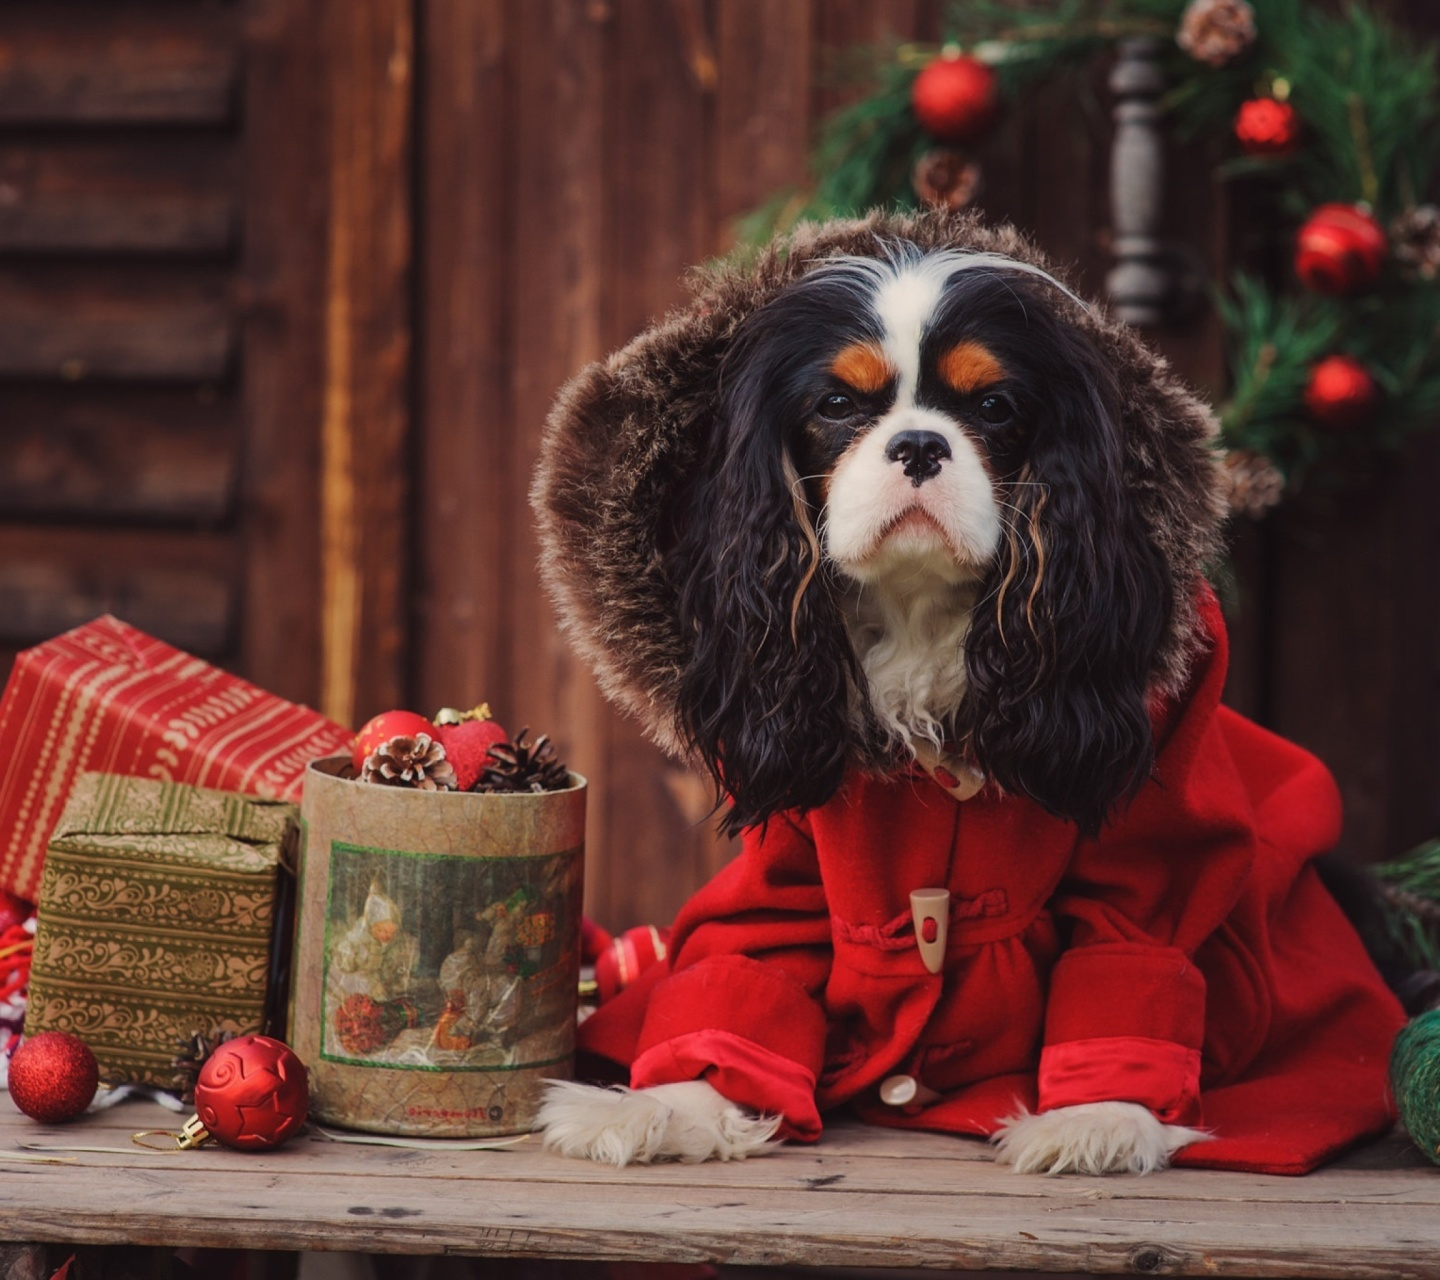 Dog Cavalier King Charles Spaniel in Christmas Costume wallpaper 1440x1280